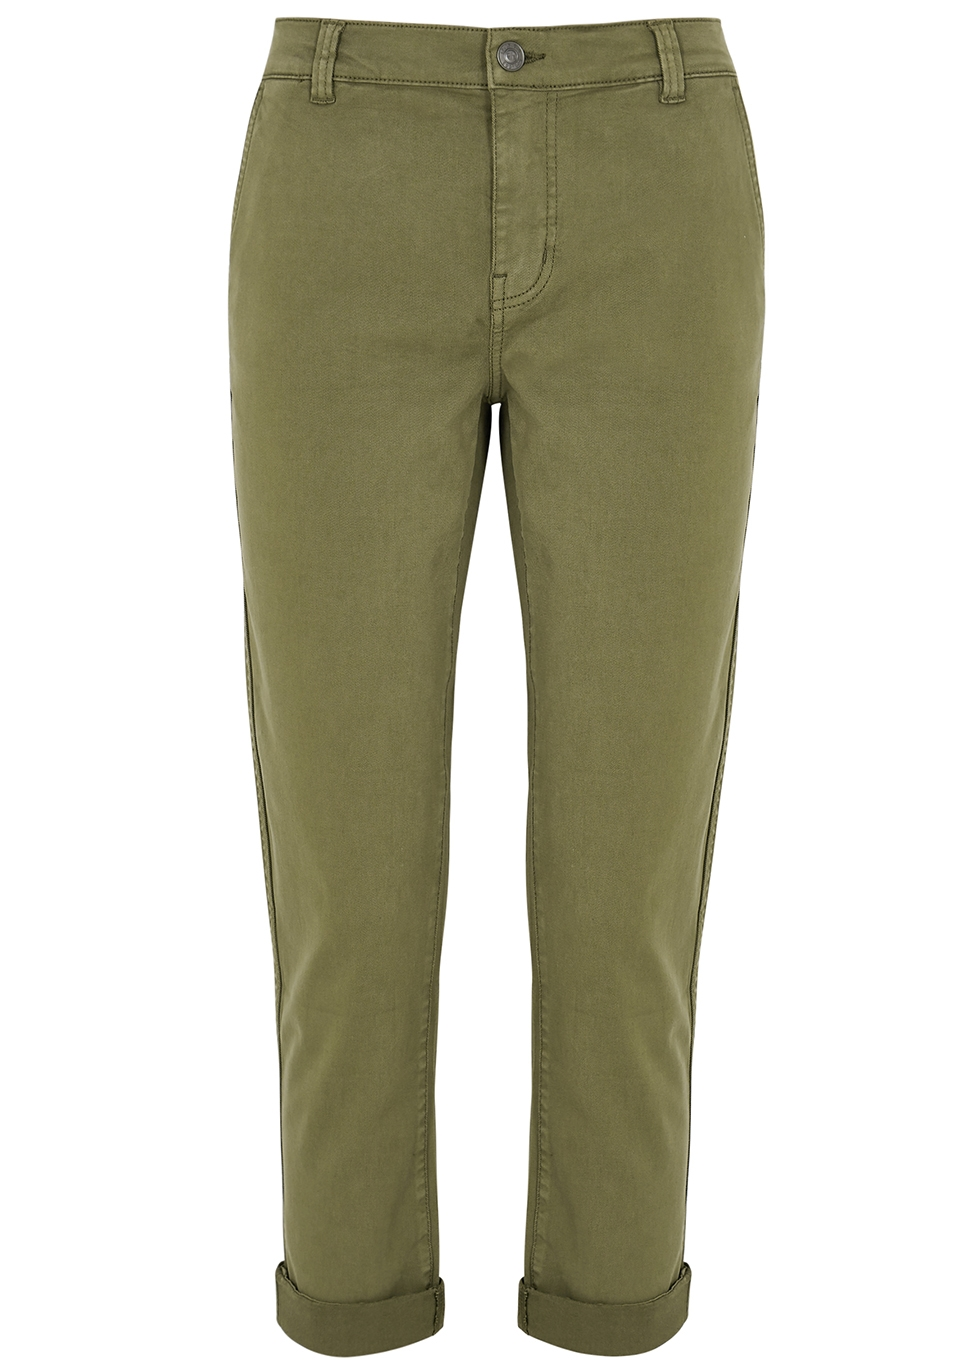 The Confidant army green trousers